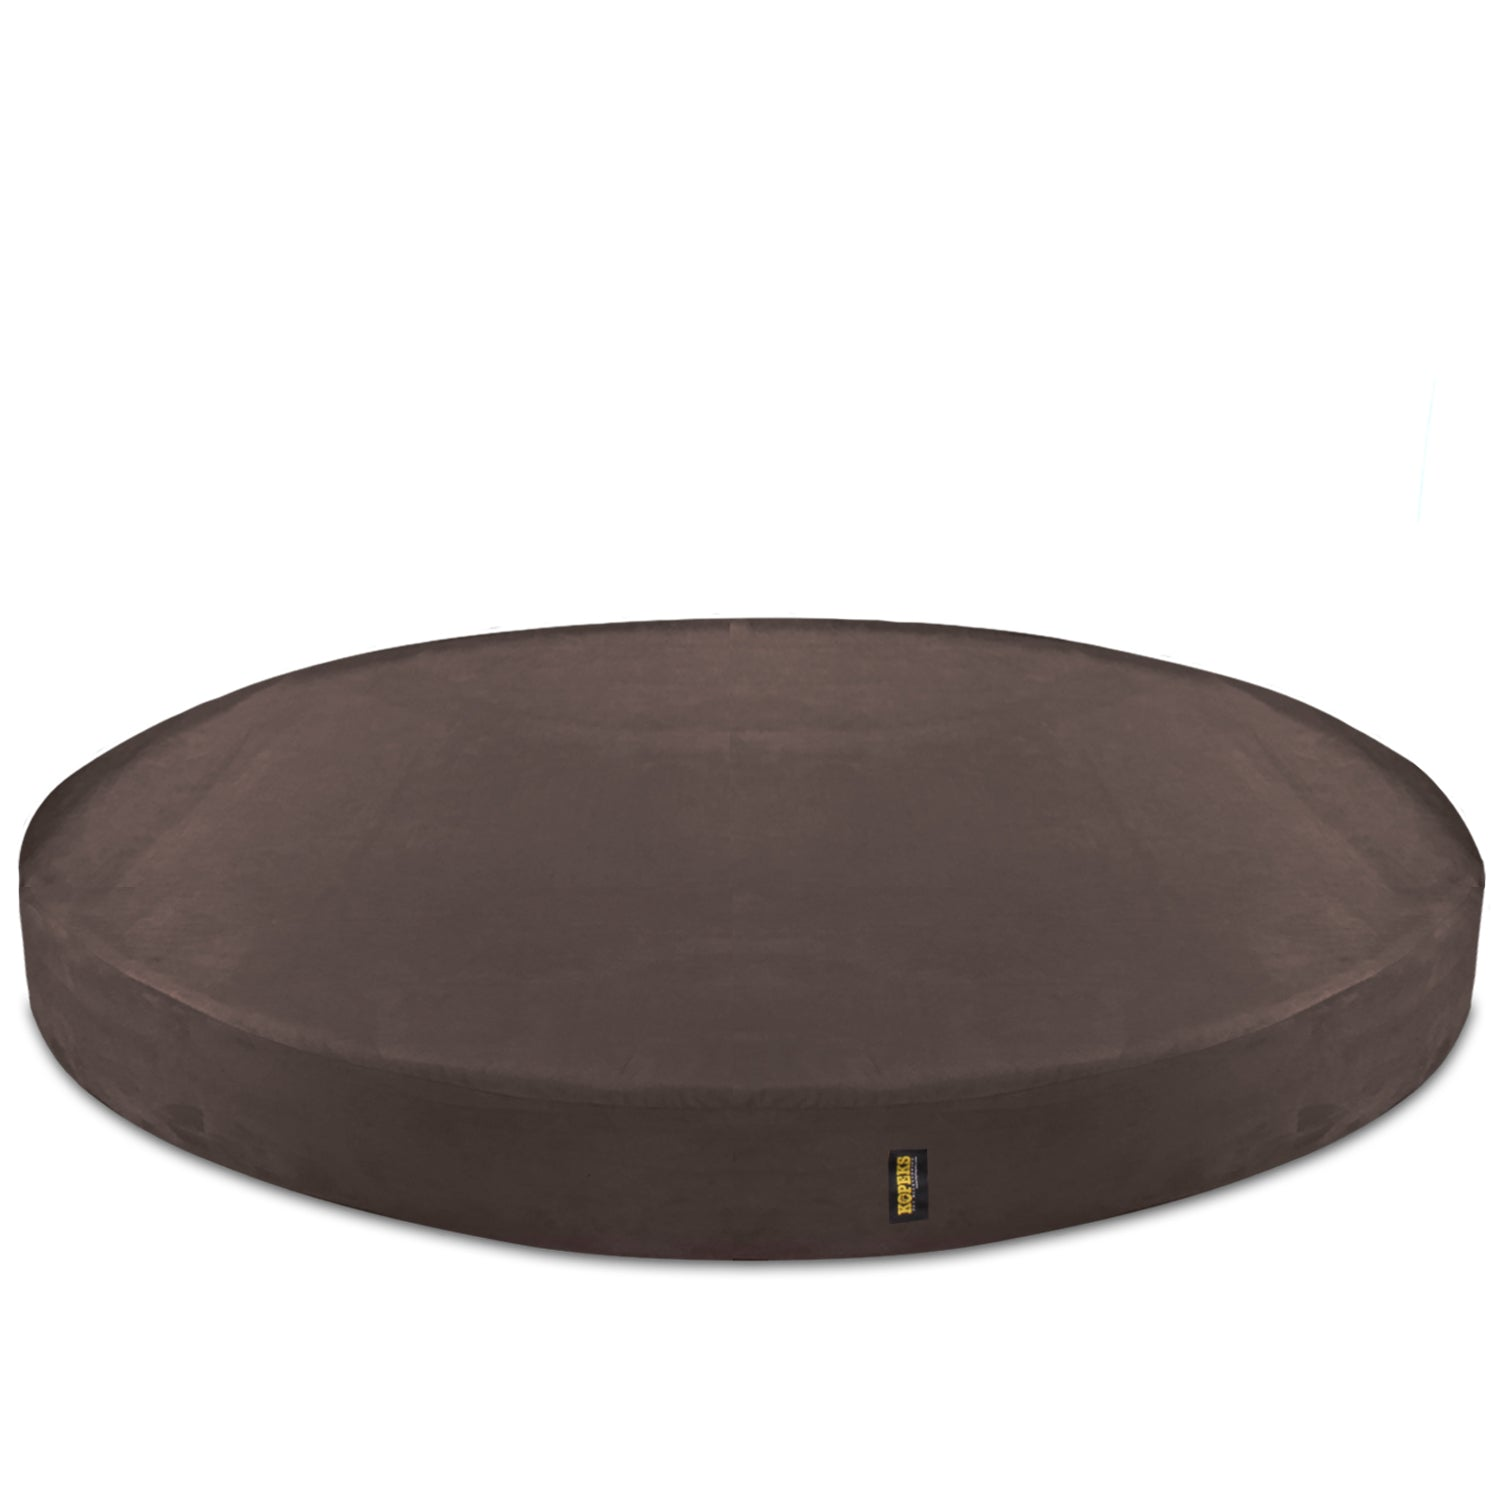 Replacement - Cover For Dog Bed Round Deluxe